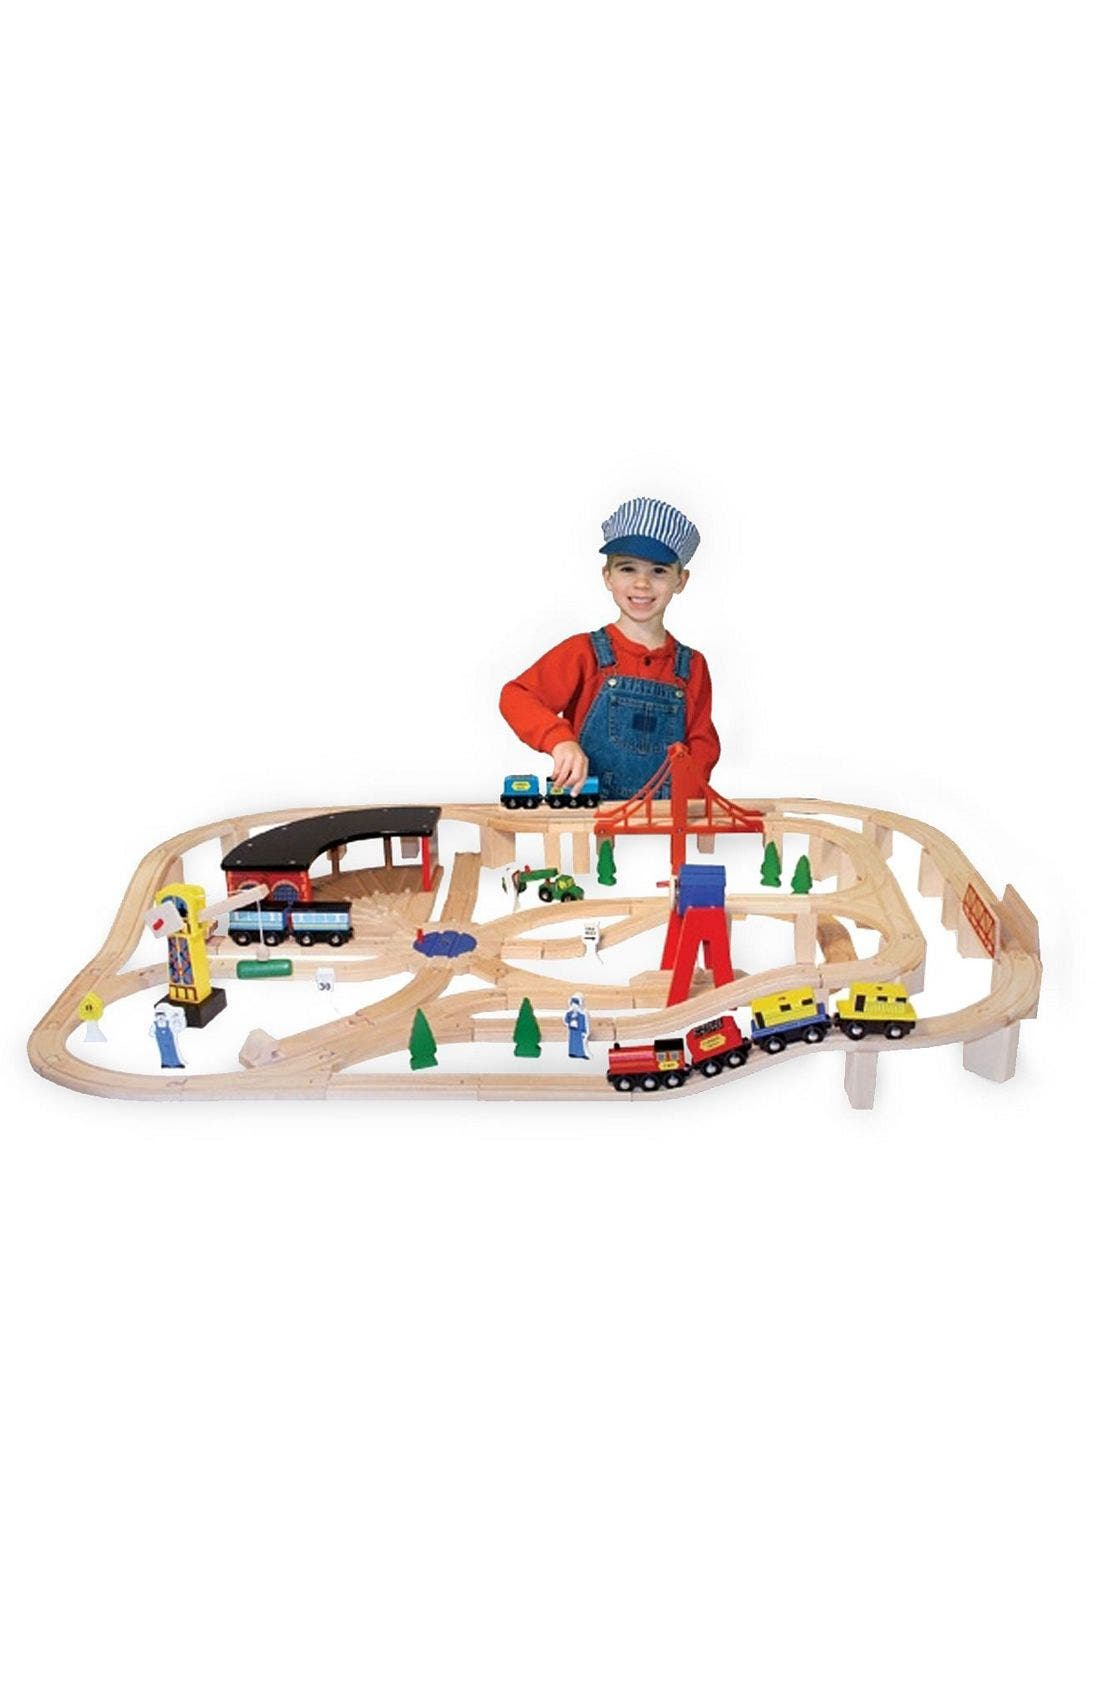 132-Piece Wooden Railway Set,                             Main thumbnail 1, color,                             WOODEN RAILWAY SET